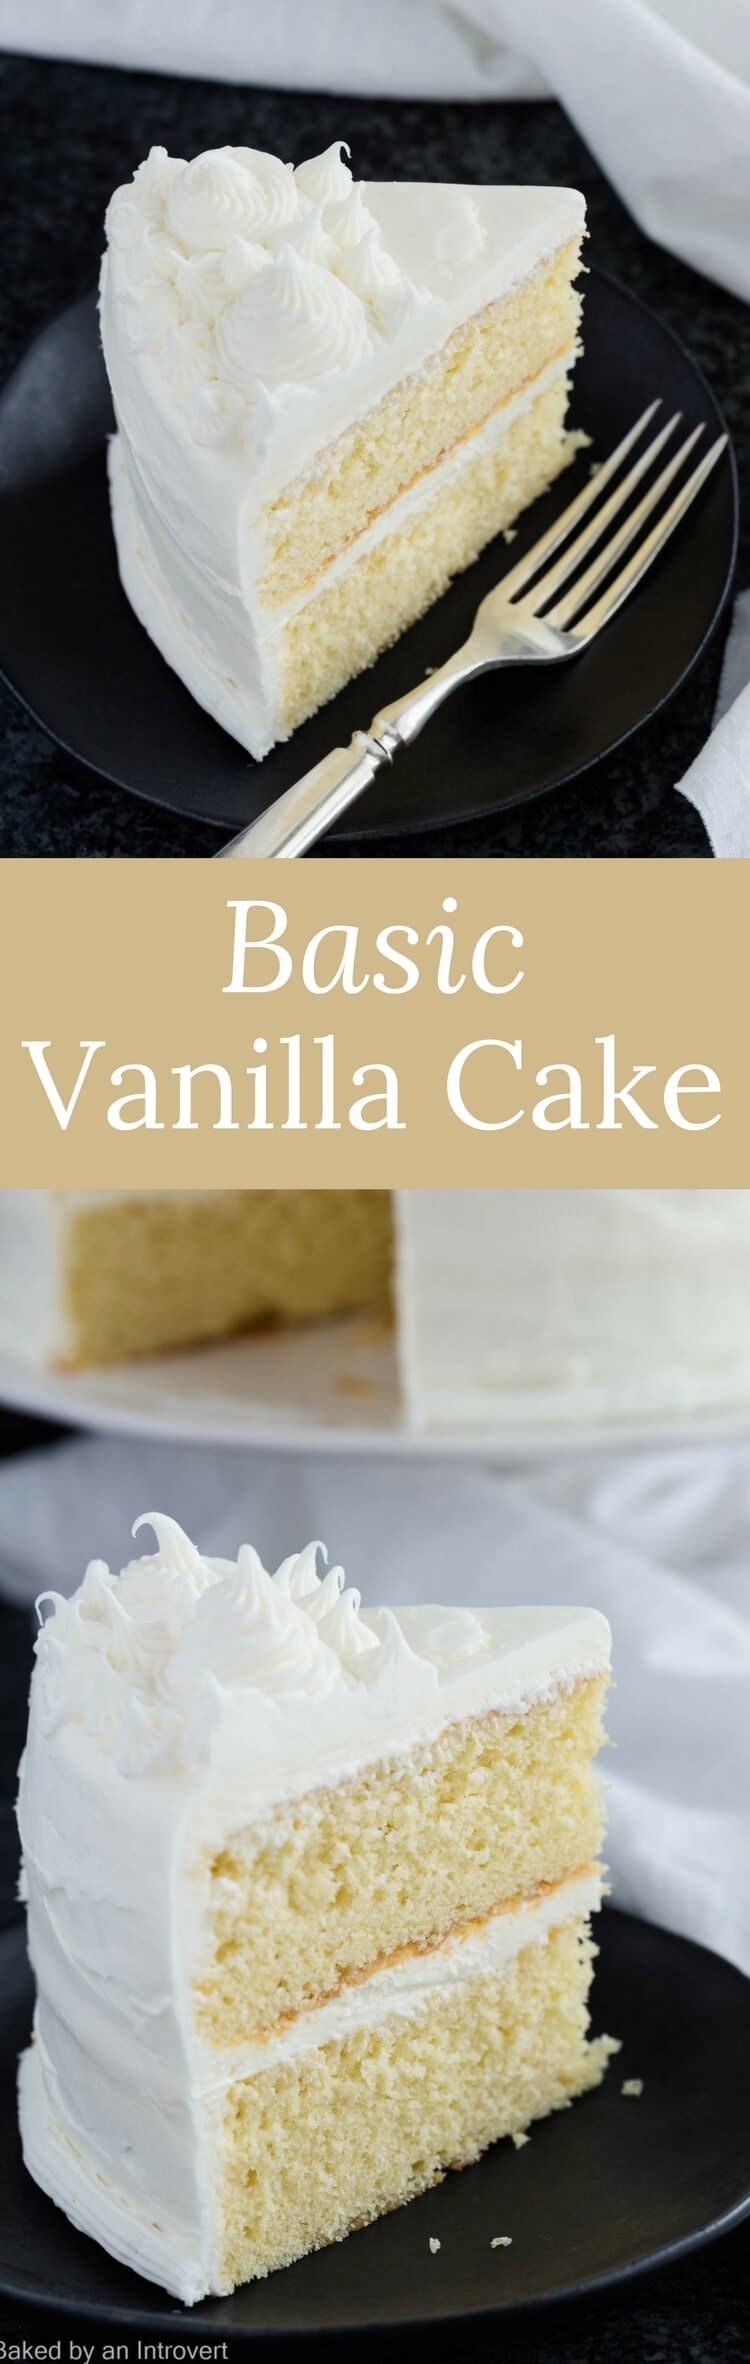 Basic Vanilla Cake Recipe Cakes Pinterest Cake Recipes